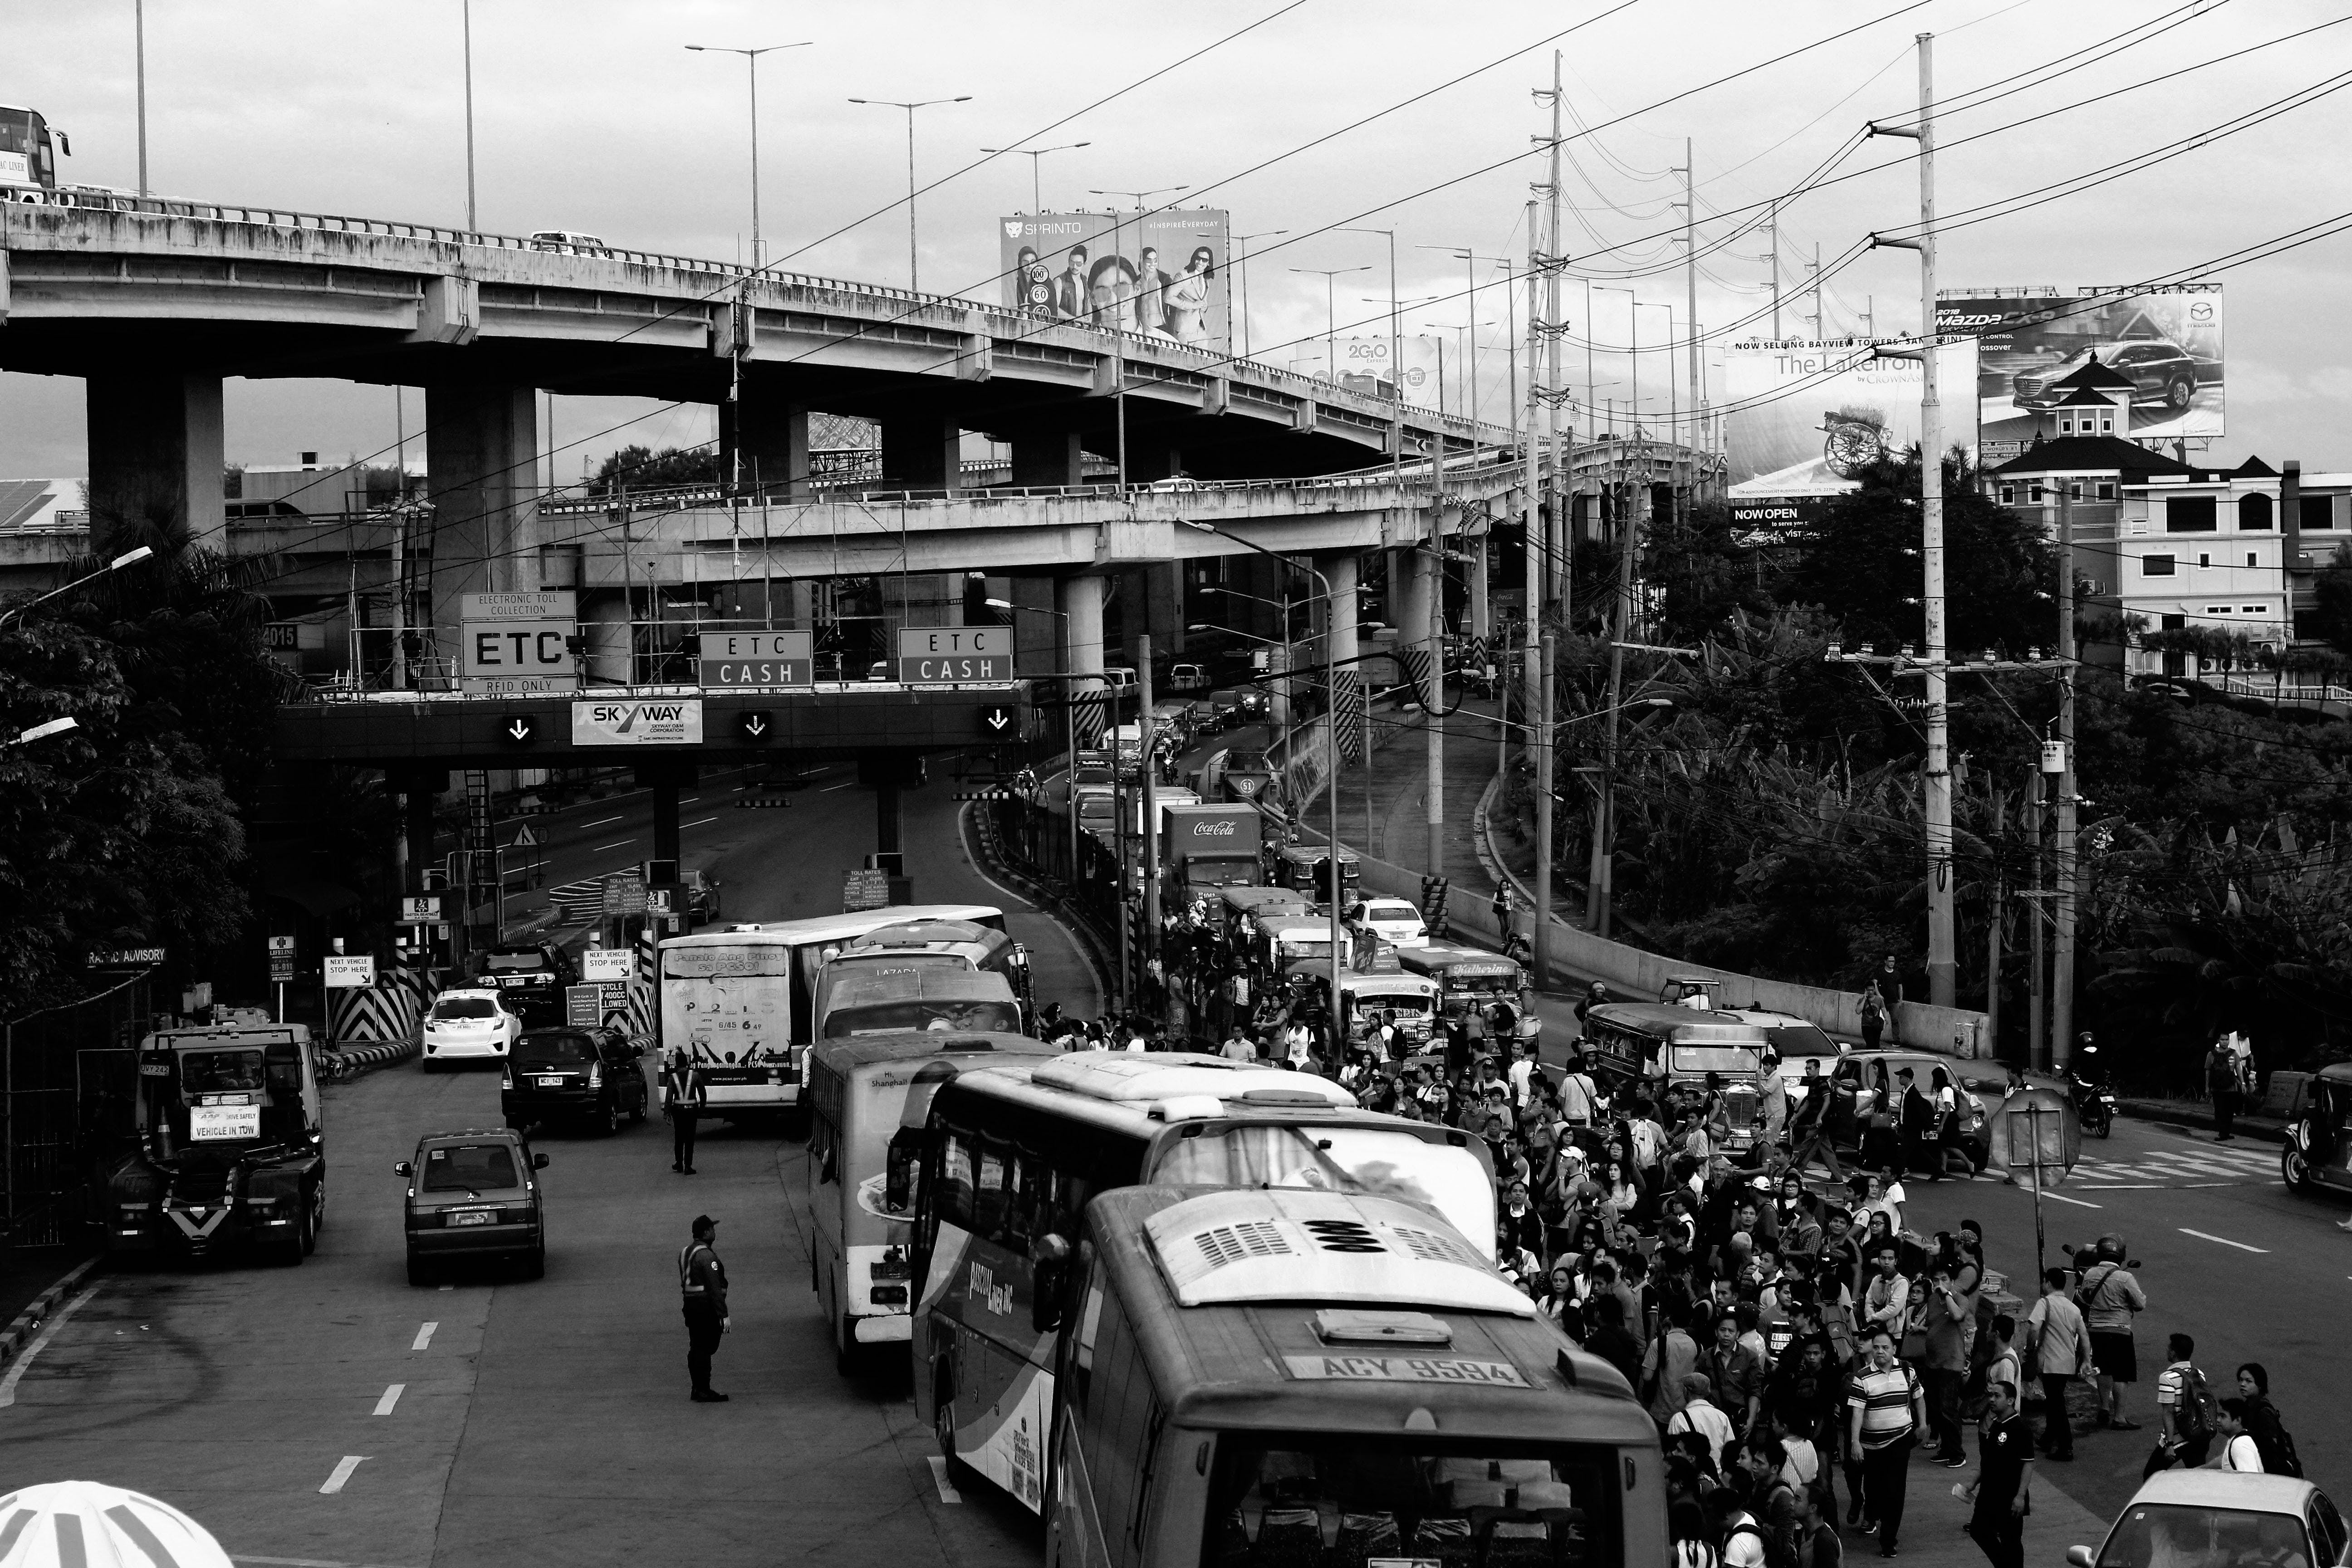 Jammed Traffic in Gray Scale Photography